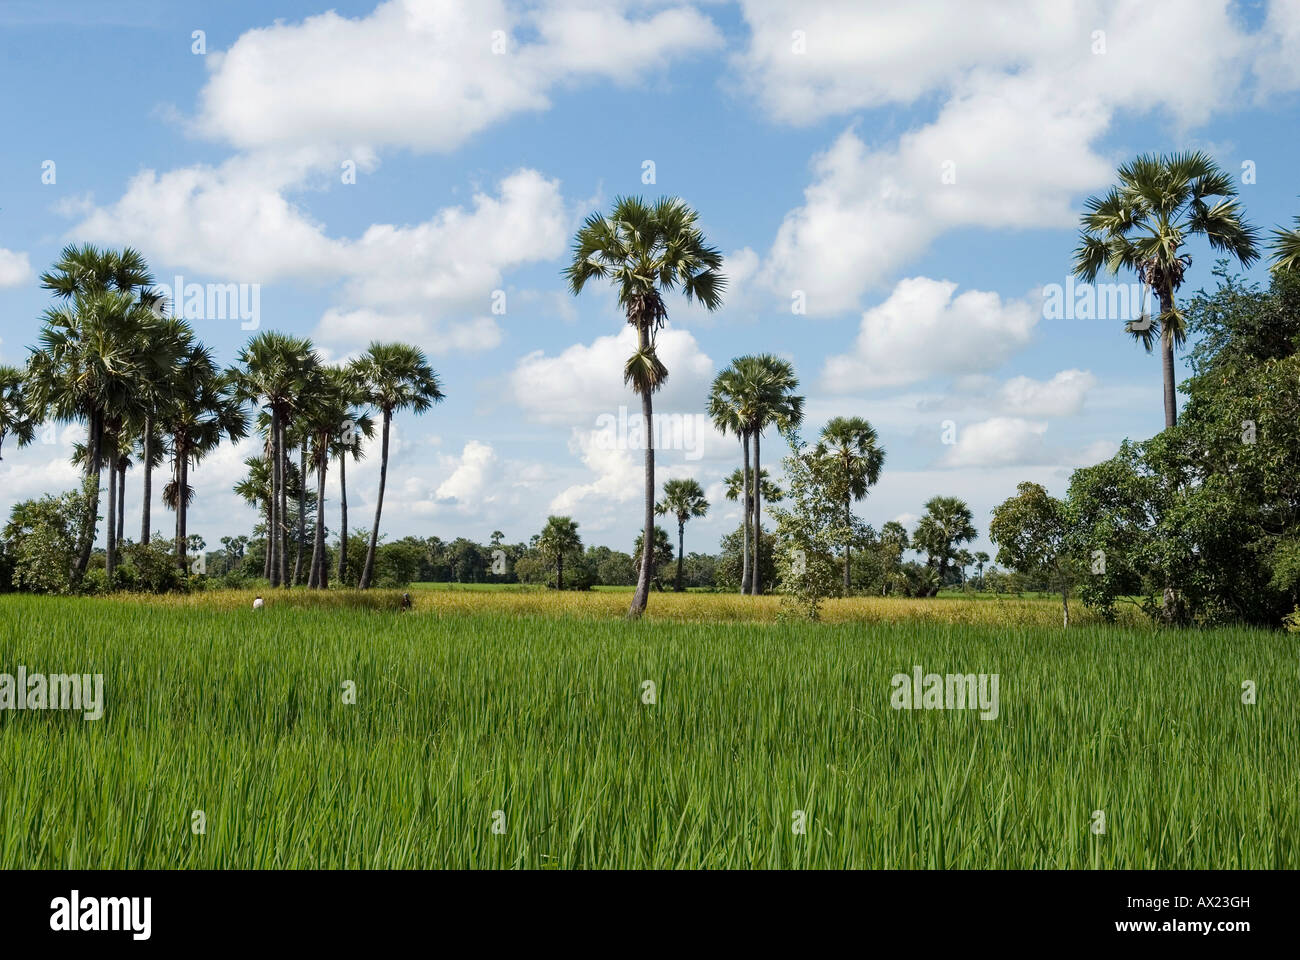 Landscape with rice field and palm trees, Takeo Province, Cambodia - Stock Image